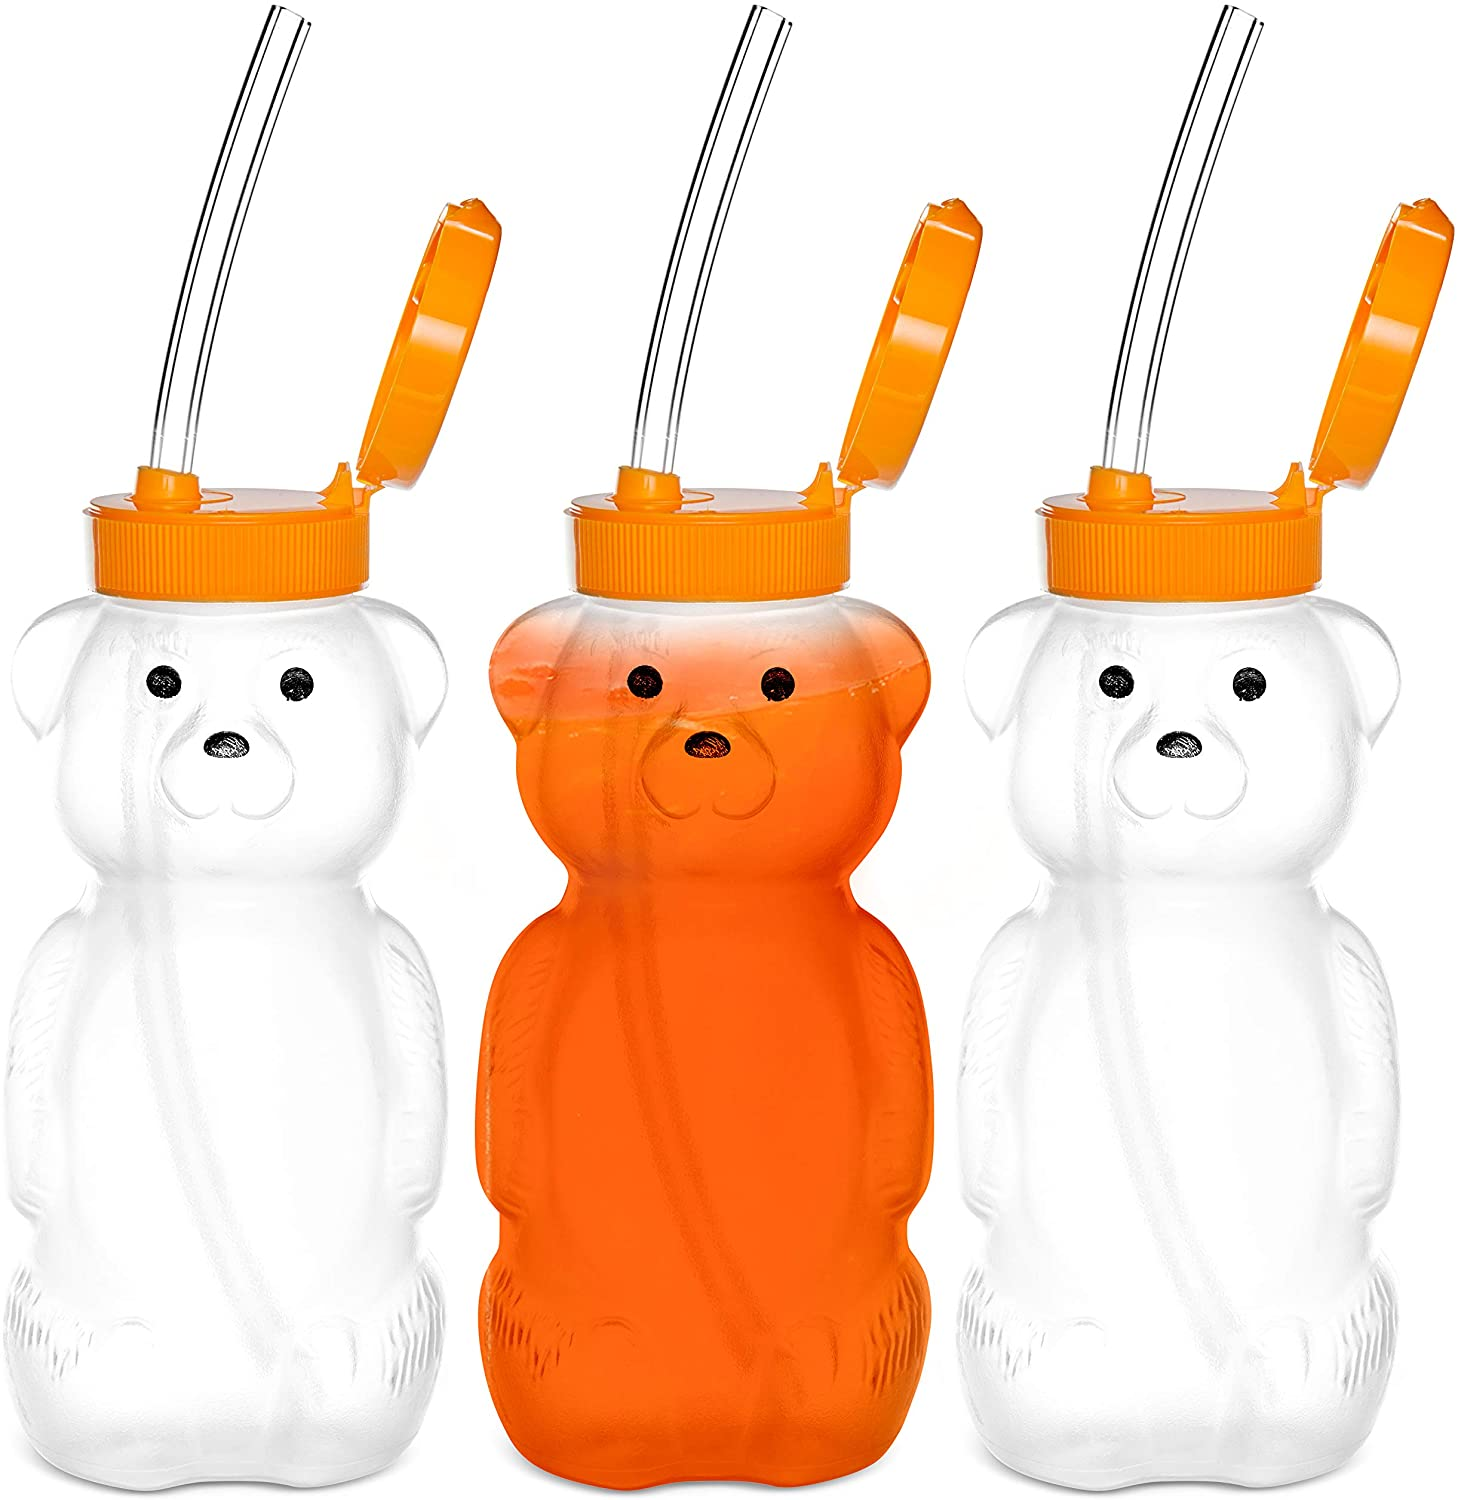 Special Supplies Juice Bear Bottle Drinking Cup with Long Straws, 3 Pack, Squeezable Therapy and Special Needs Assistive Drink Containers, Spill Proof and Leak Resistant Lids